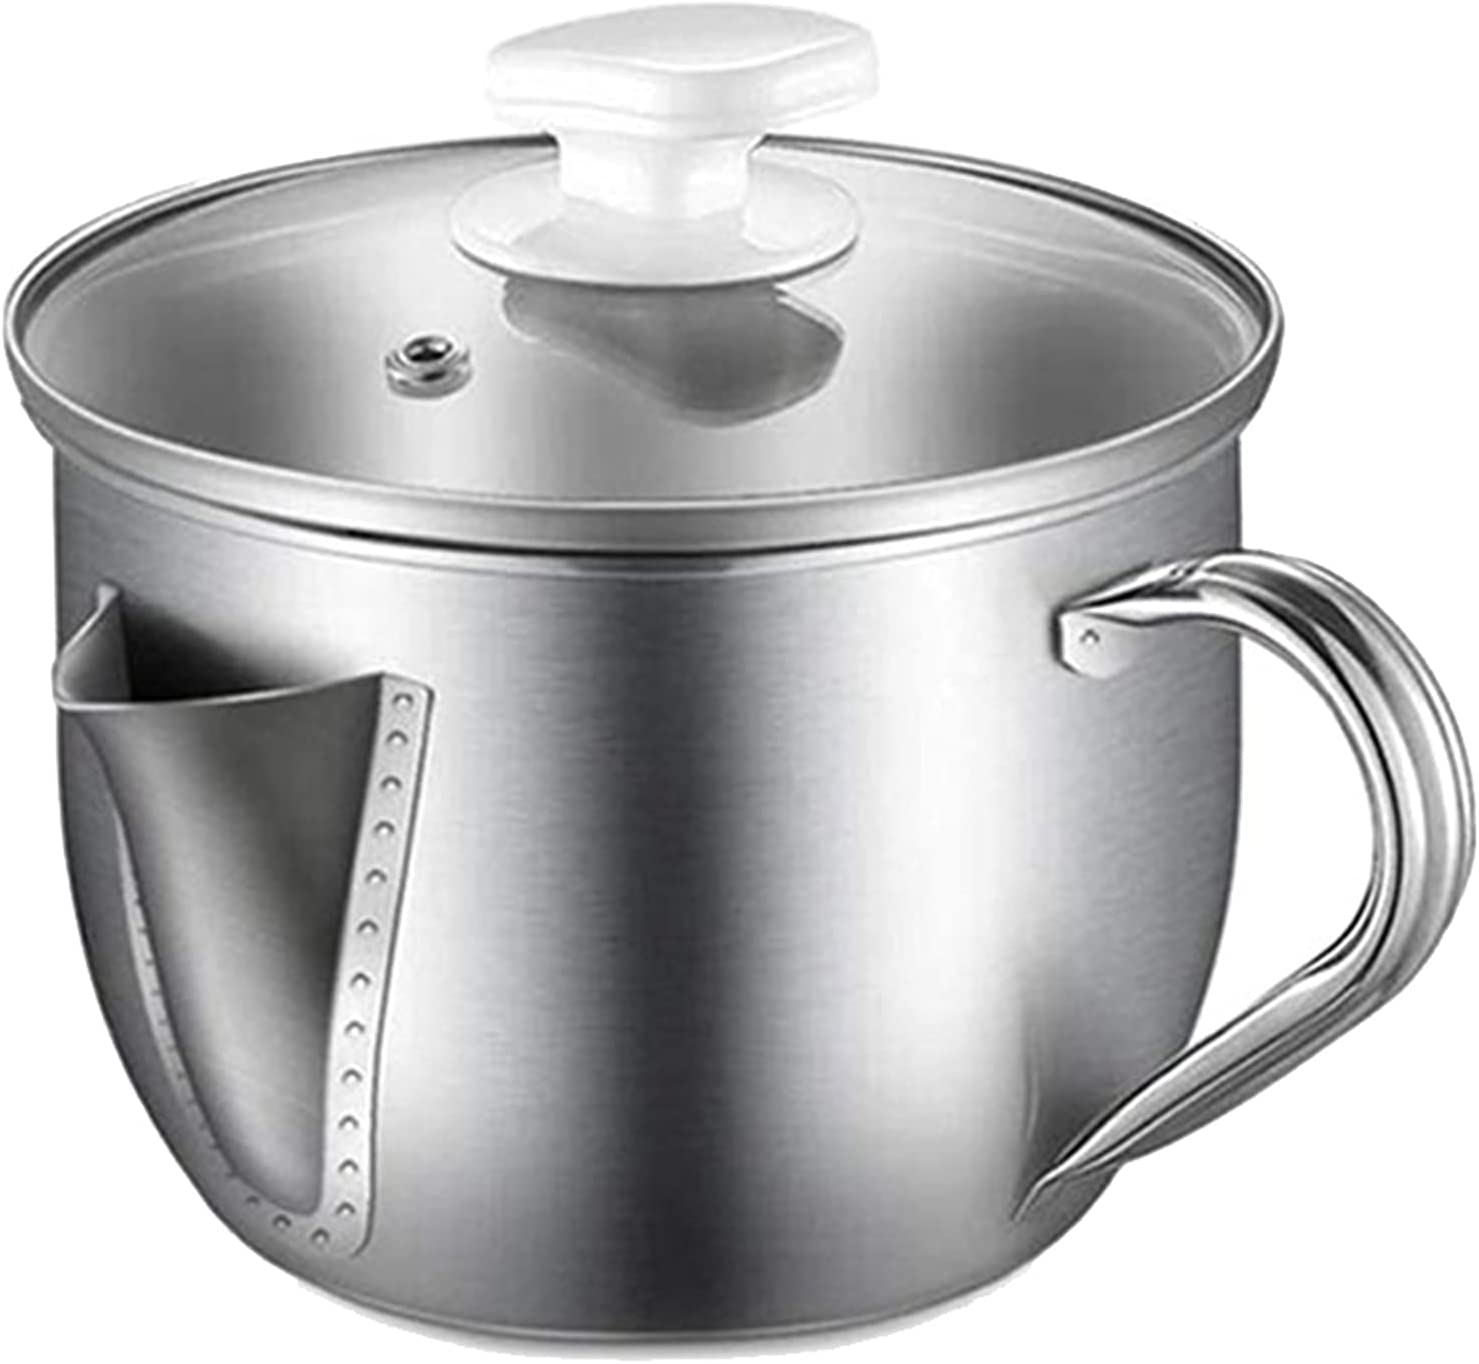 It is very popular Colanders Food Strainers Practical Soup Manufacturer regenerated product 1000Ml Stainless Steel